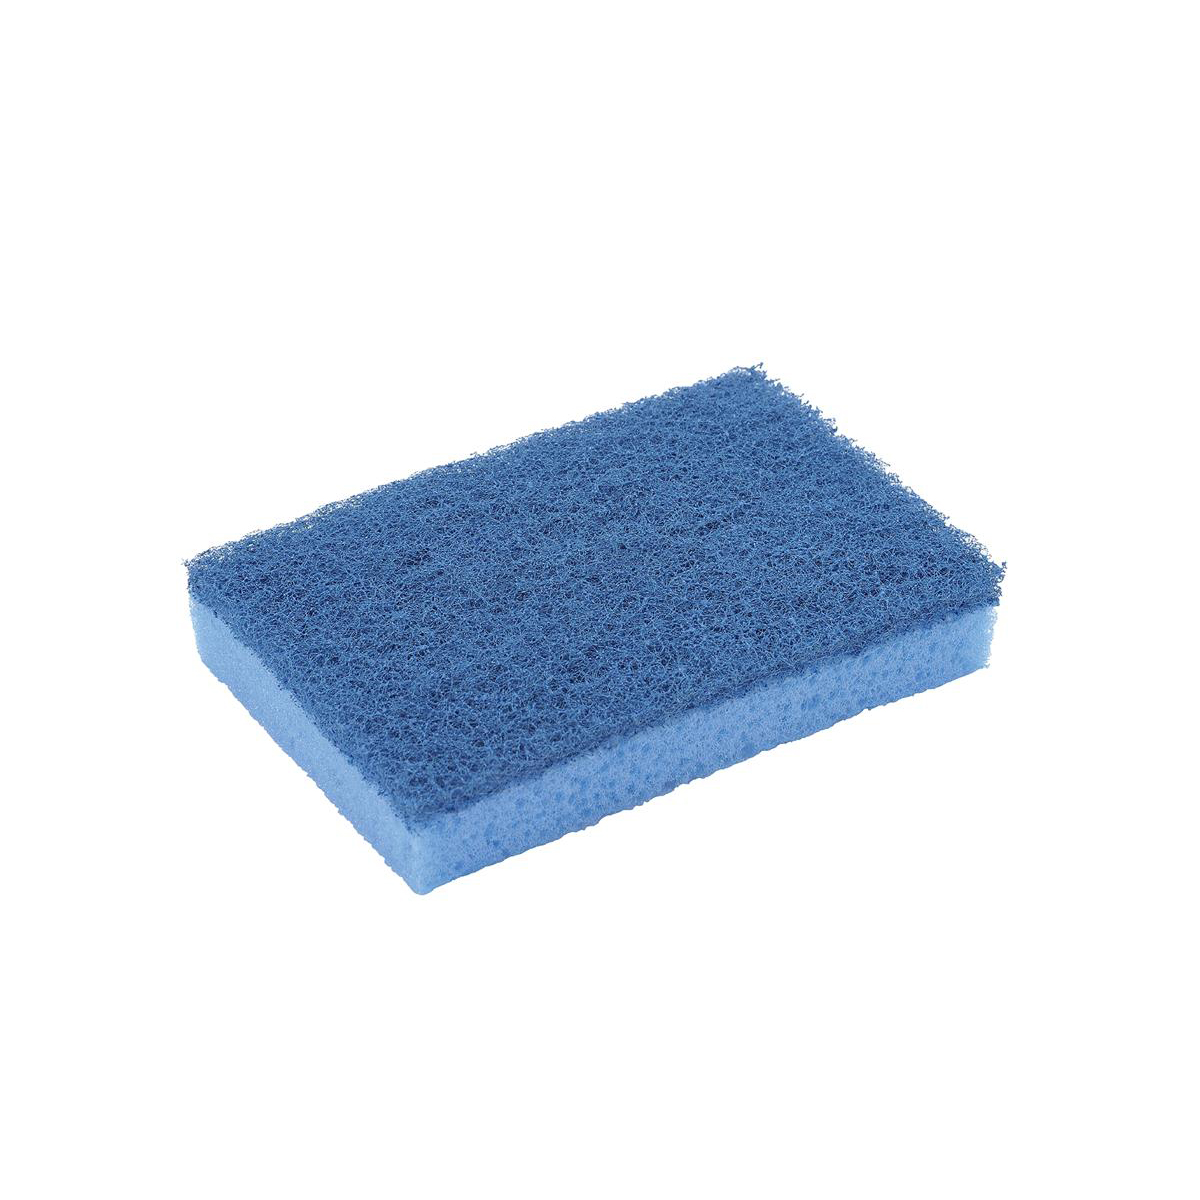 Sponges Sponge Scourer High Quality Non Scratch Blue [Pack 10]